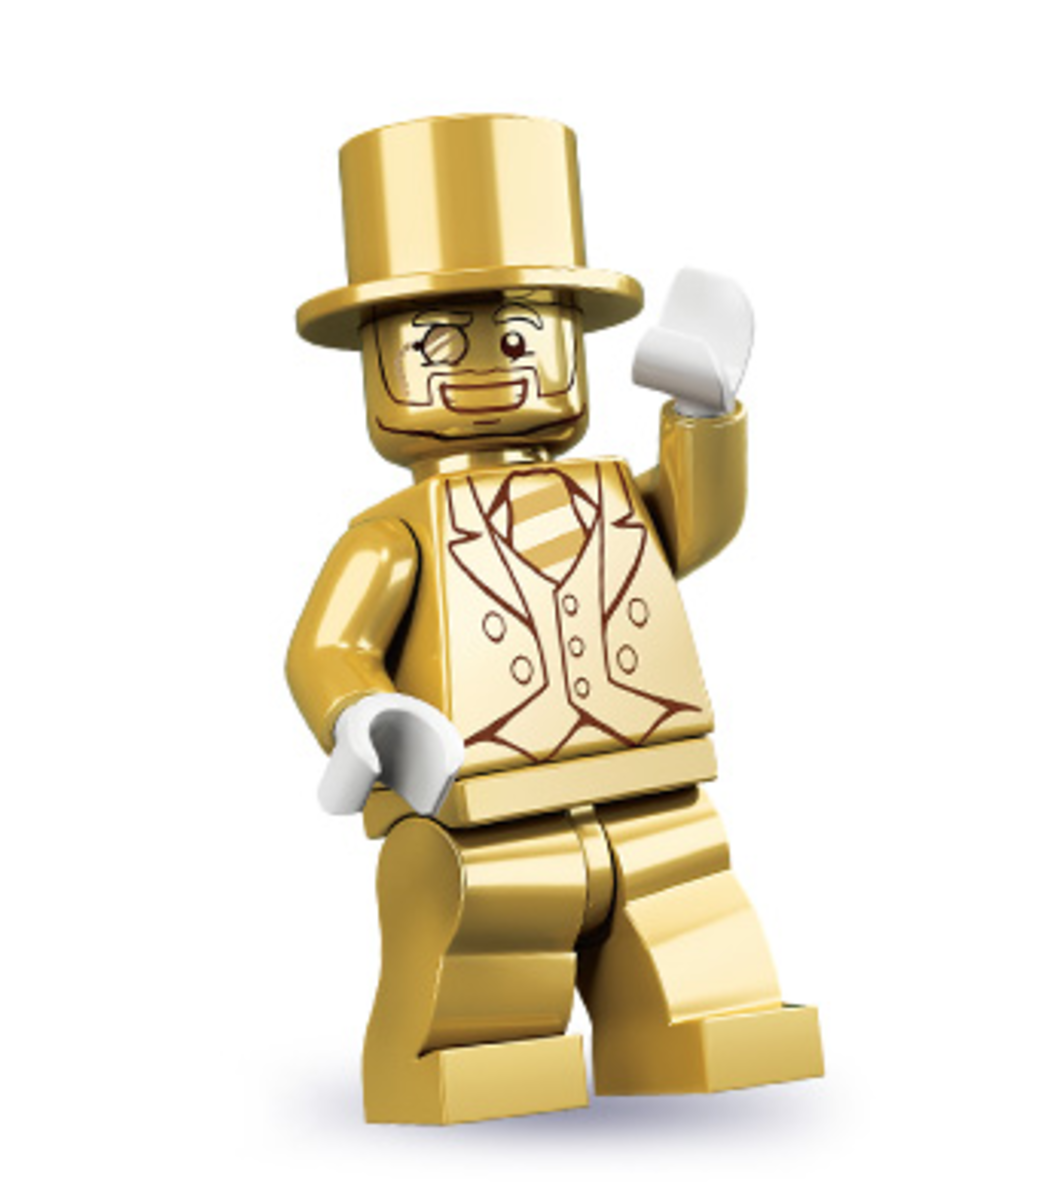 how-to-find-a-golden-lego-minifigure-from-series-10